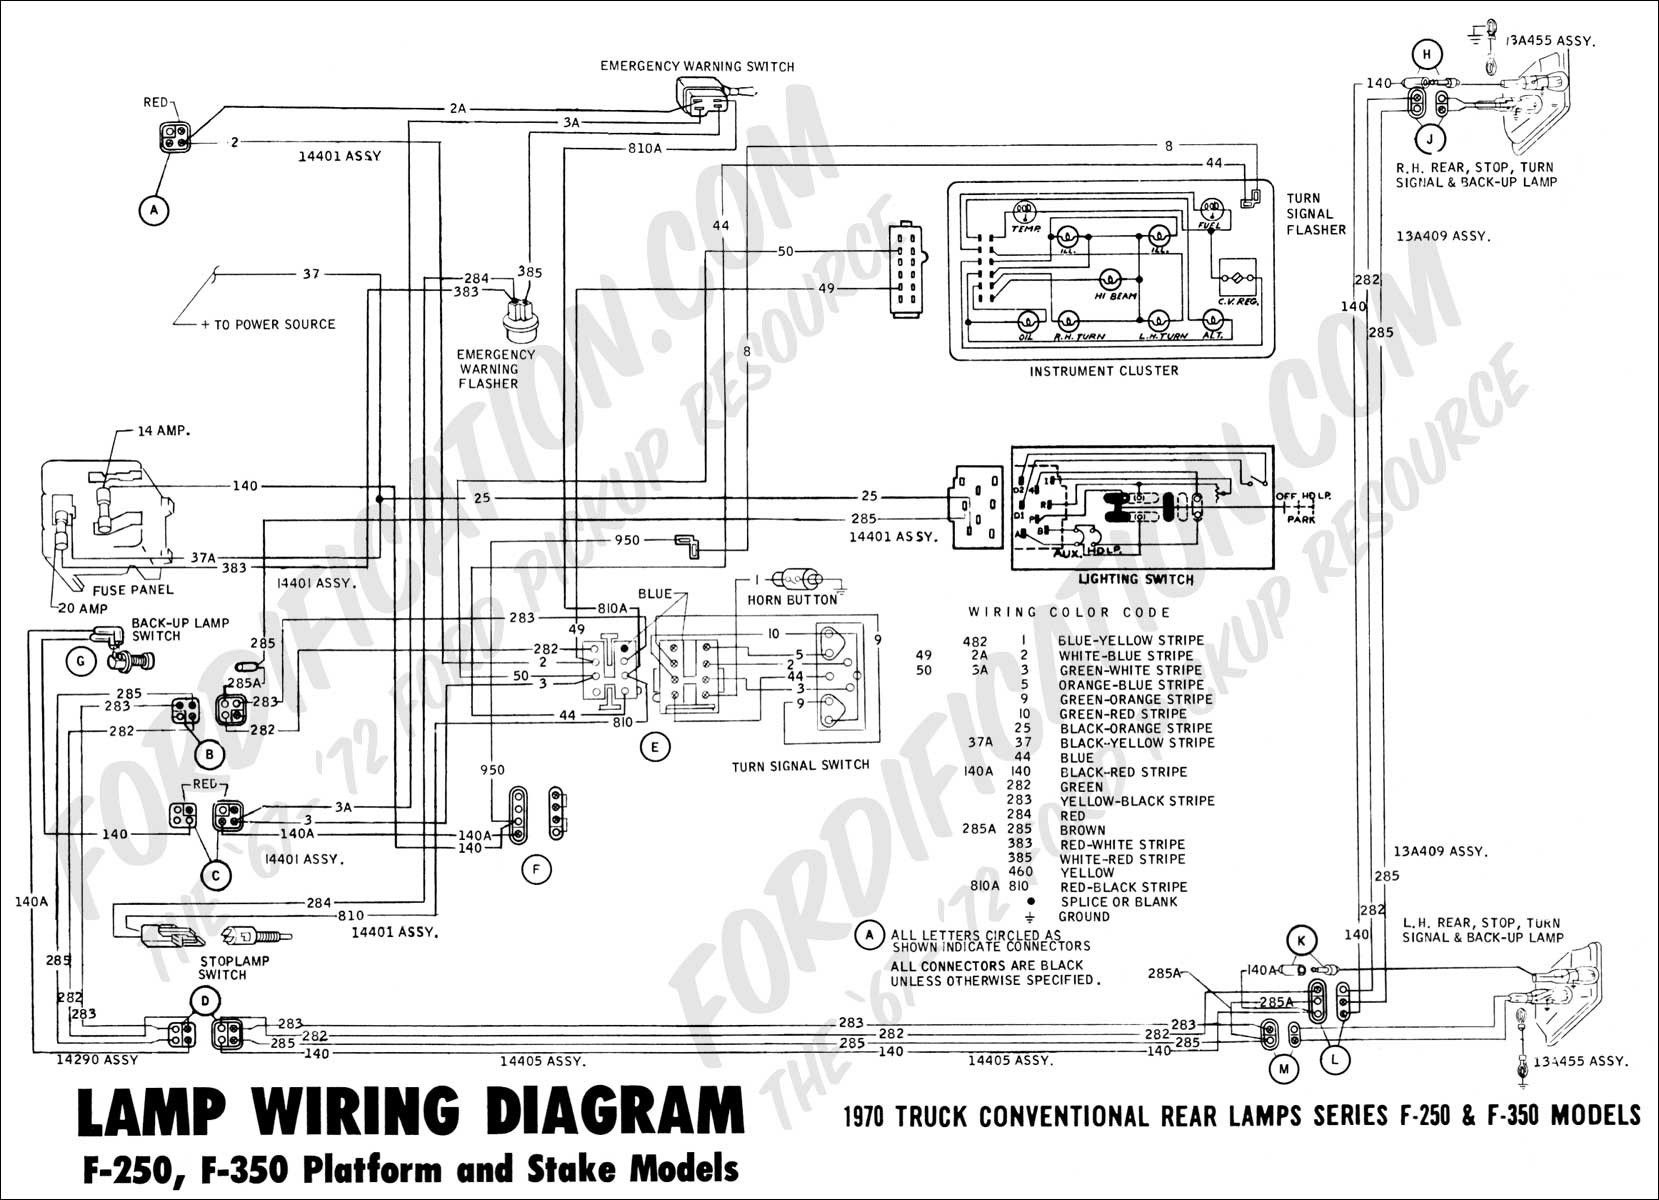 Ford F250 Wiring Diagram For Trailer Light Http Bookingritzcarlton Info Ford F250 Wiring Diagram For Trailer Light Ford F250 Diagram Ford Lightning